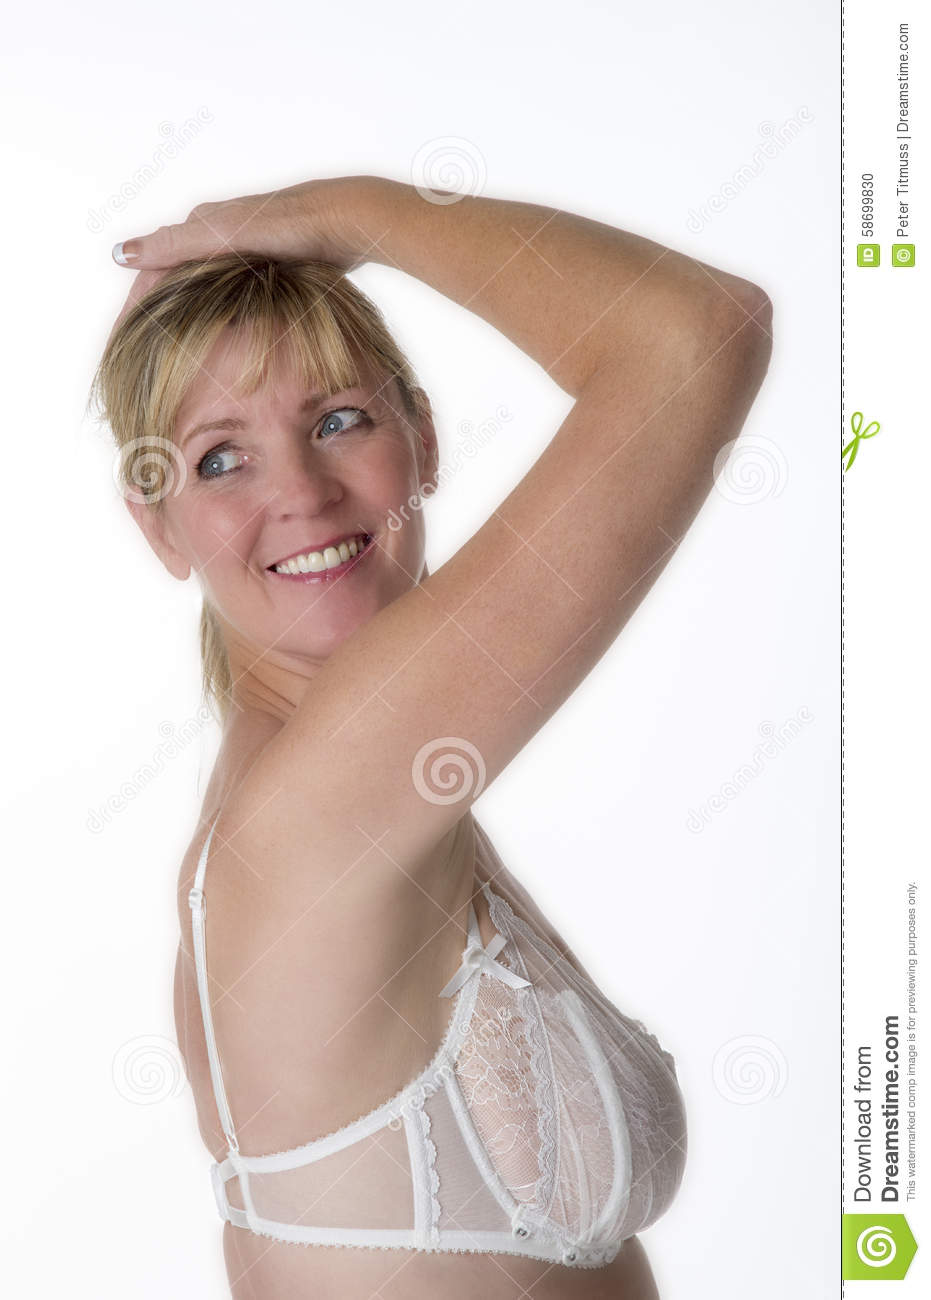 76d38bc44eb2 Woman in underwear looking over her shoulder. More similar stock images